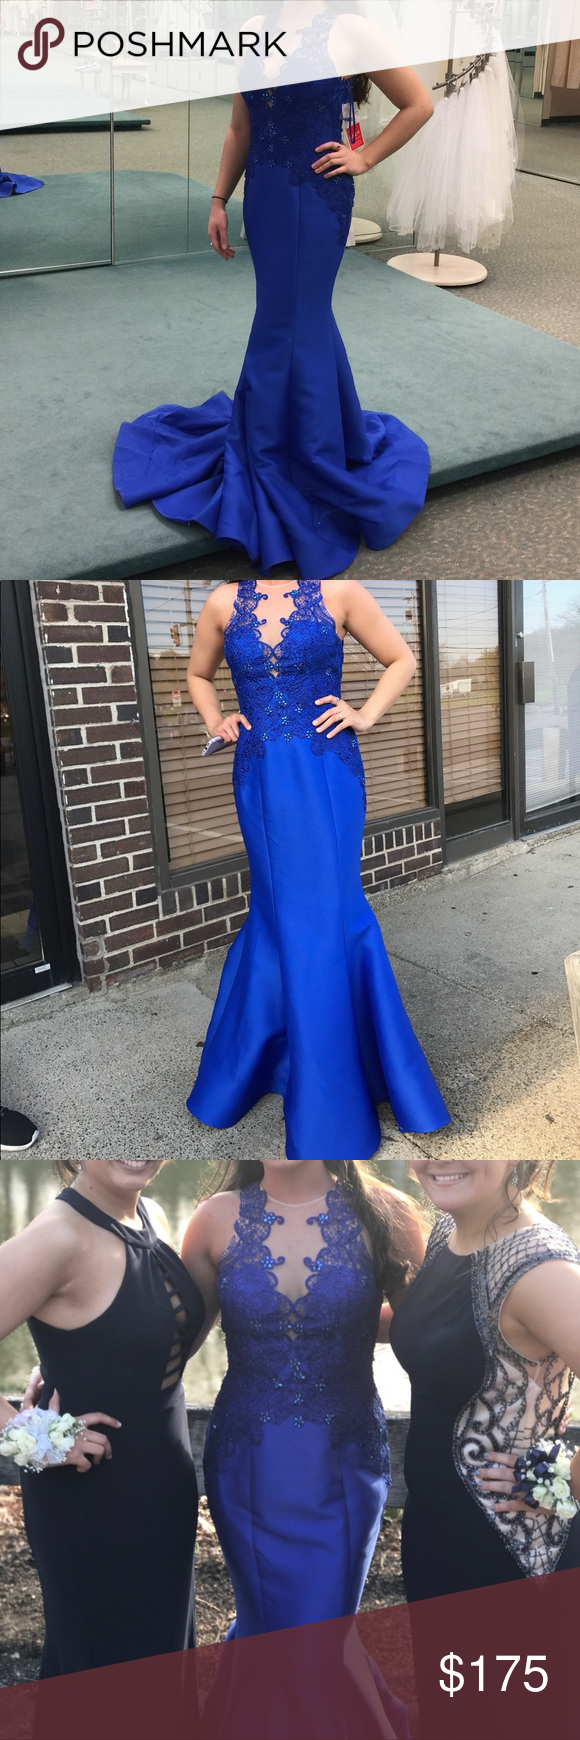 Prom dress size this beautiful beaded royal blue dress gives you